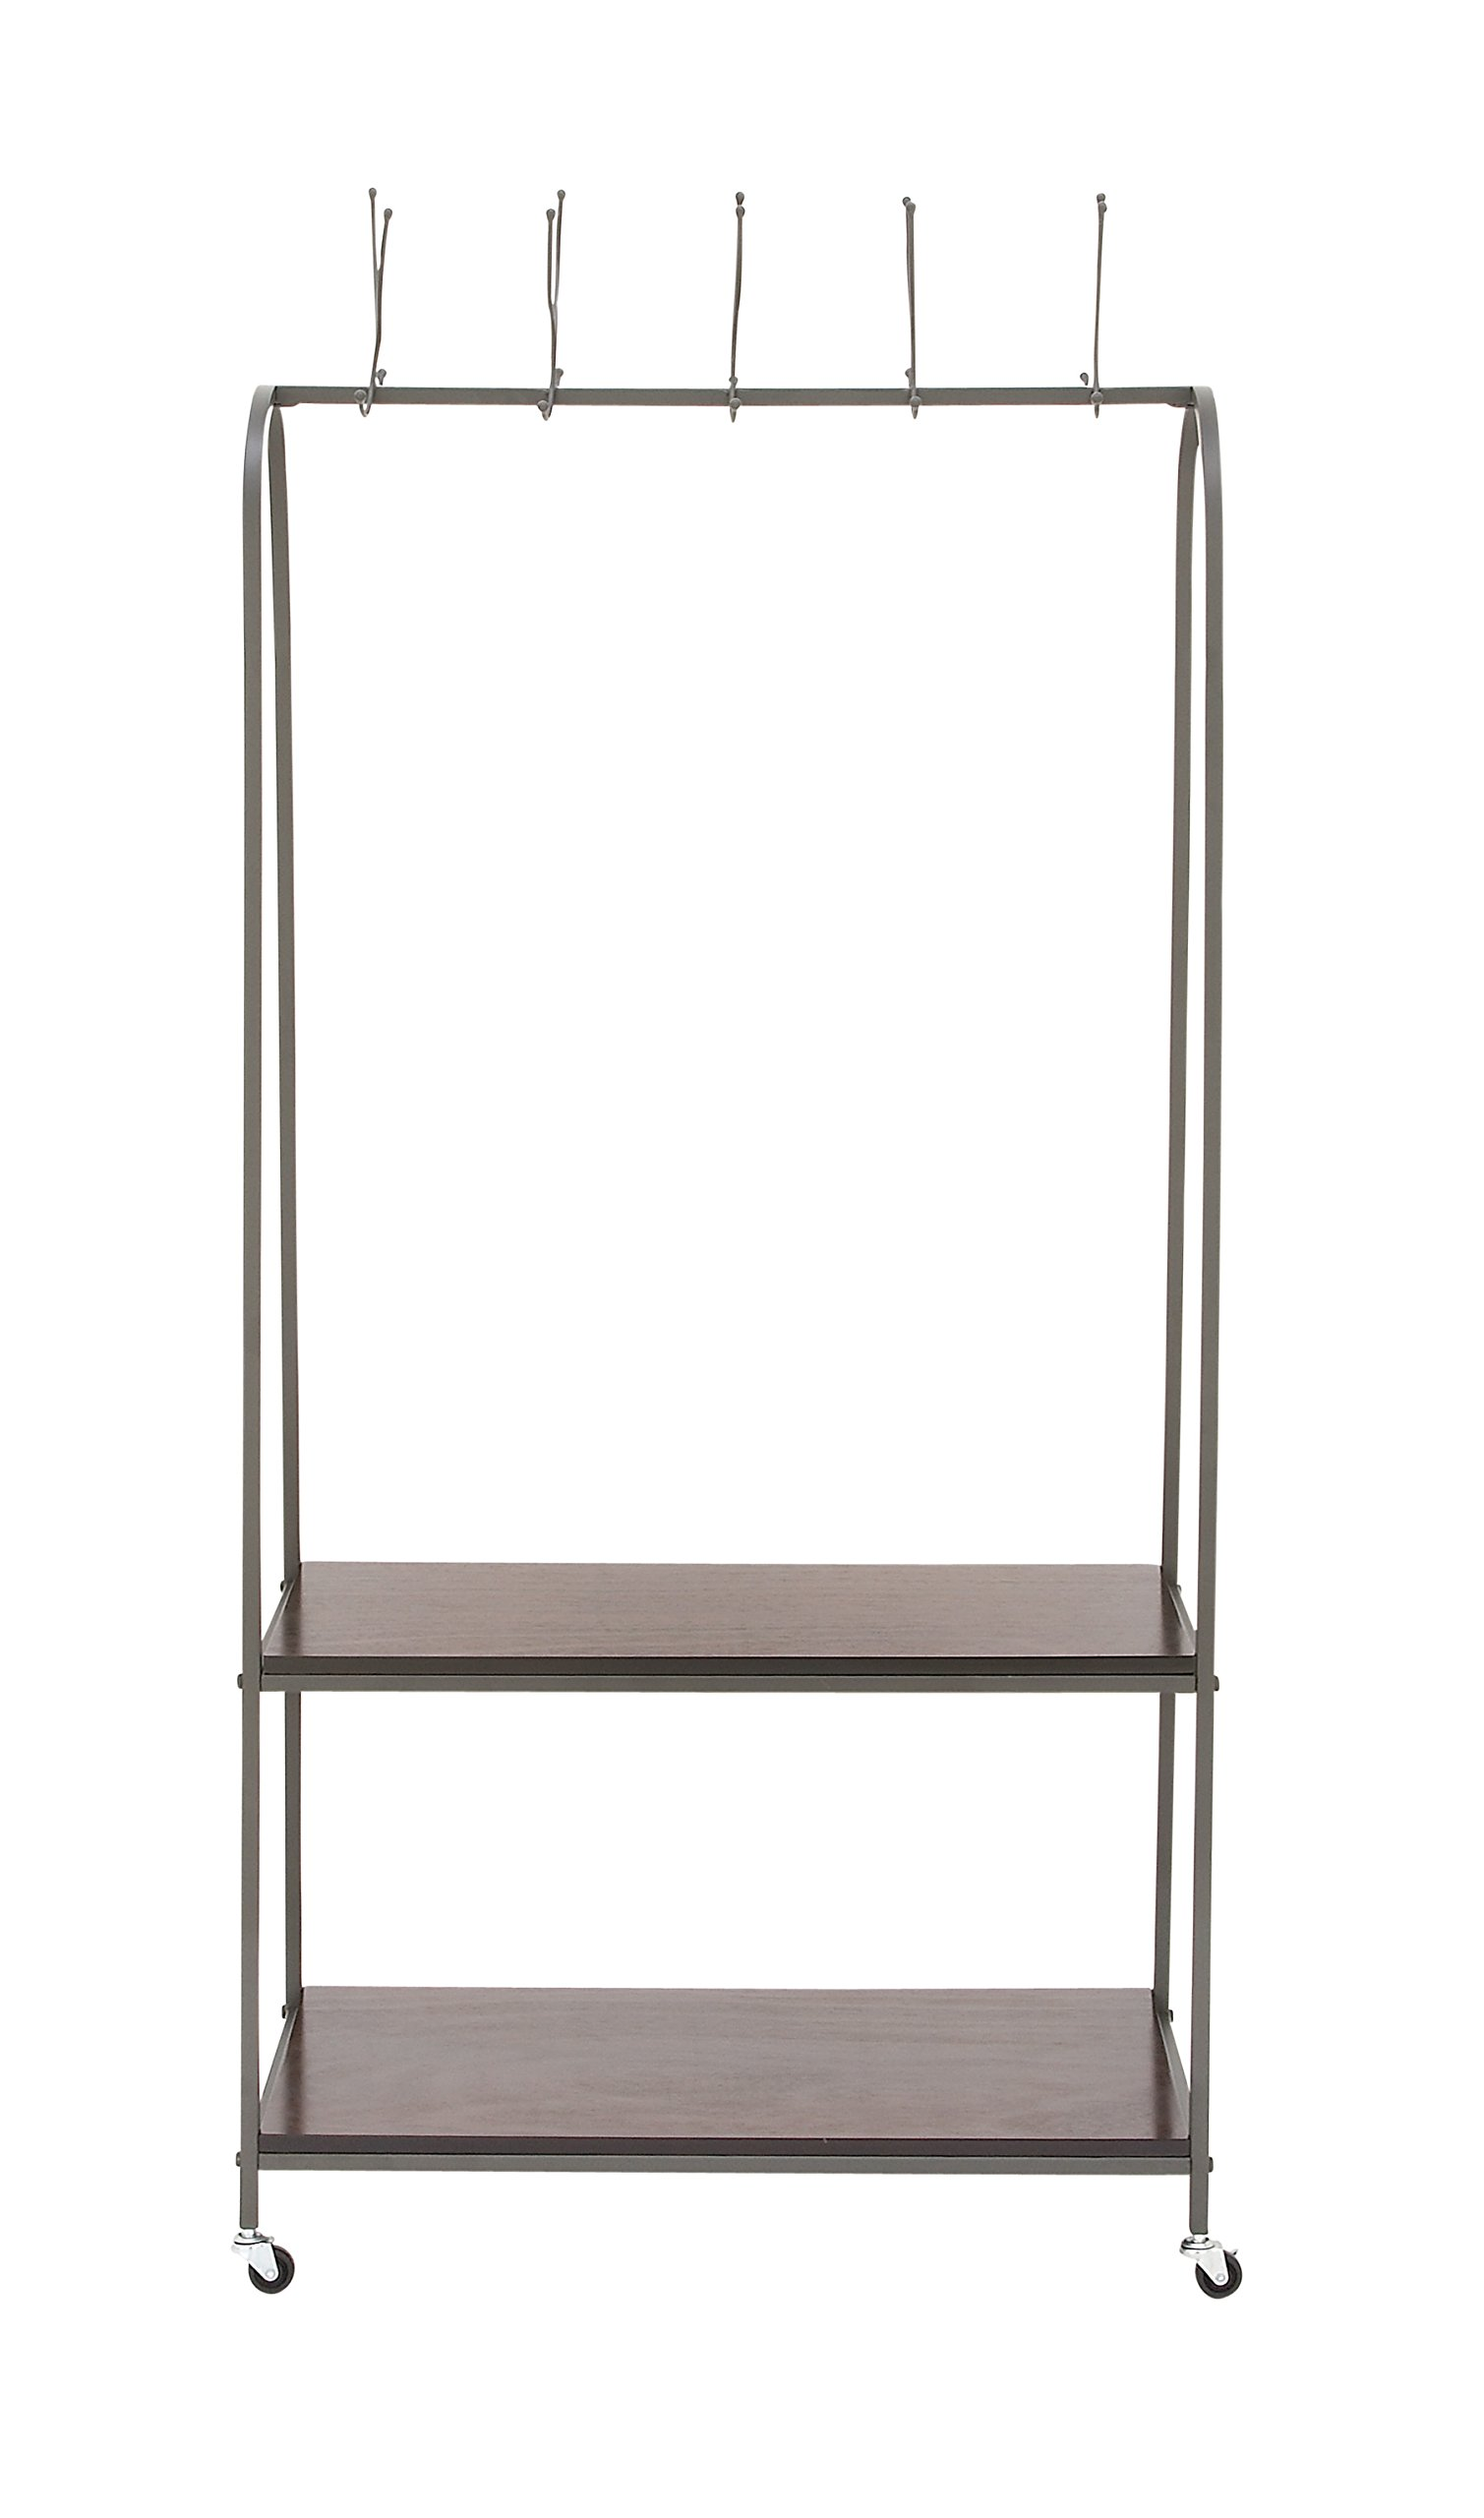 Benzara 92684 Metal Wood Coat Rack, 32''W x 69''H